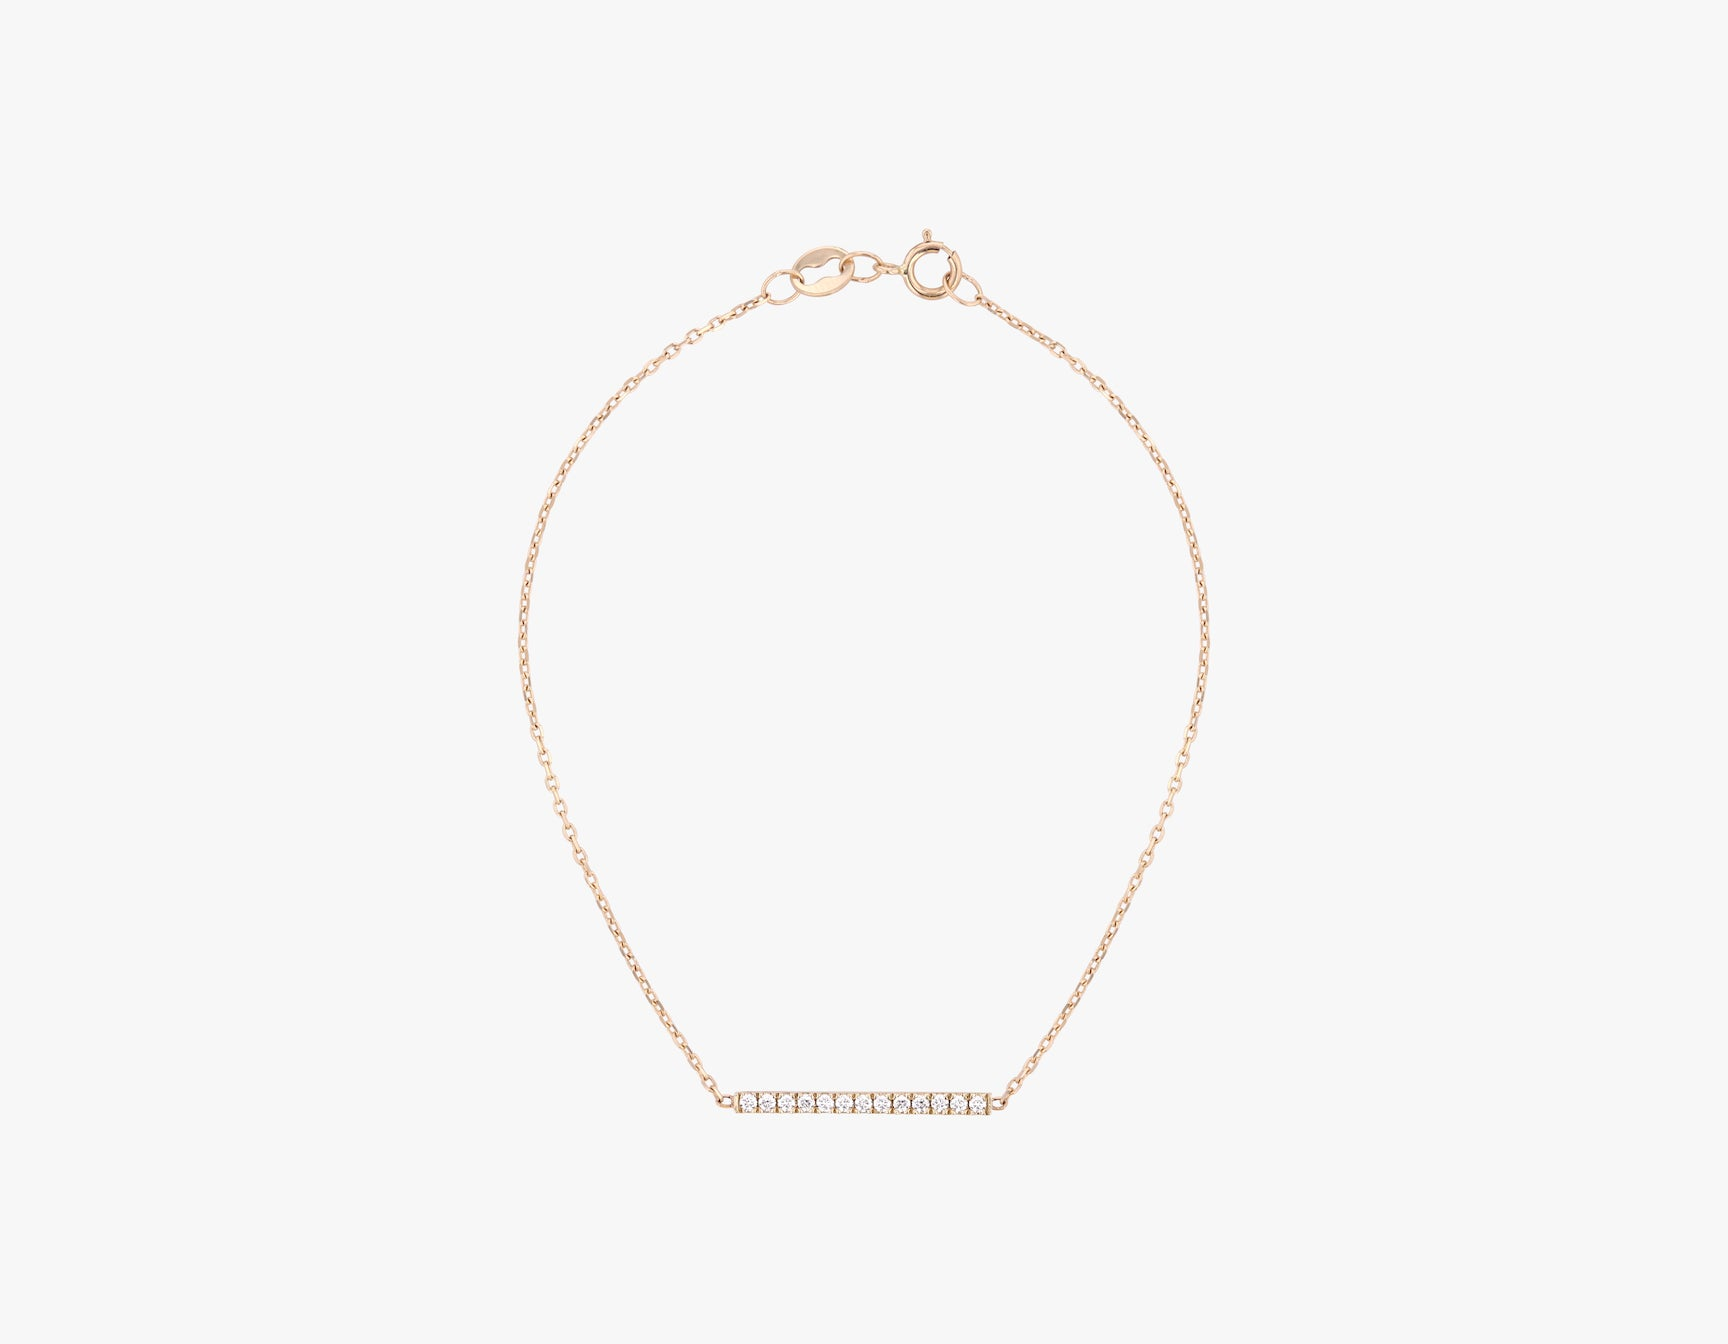 Vrai solid gold Line Bracelet with Pave, 14K Rose Gold